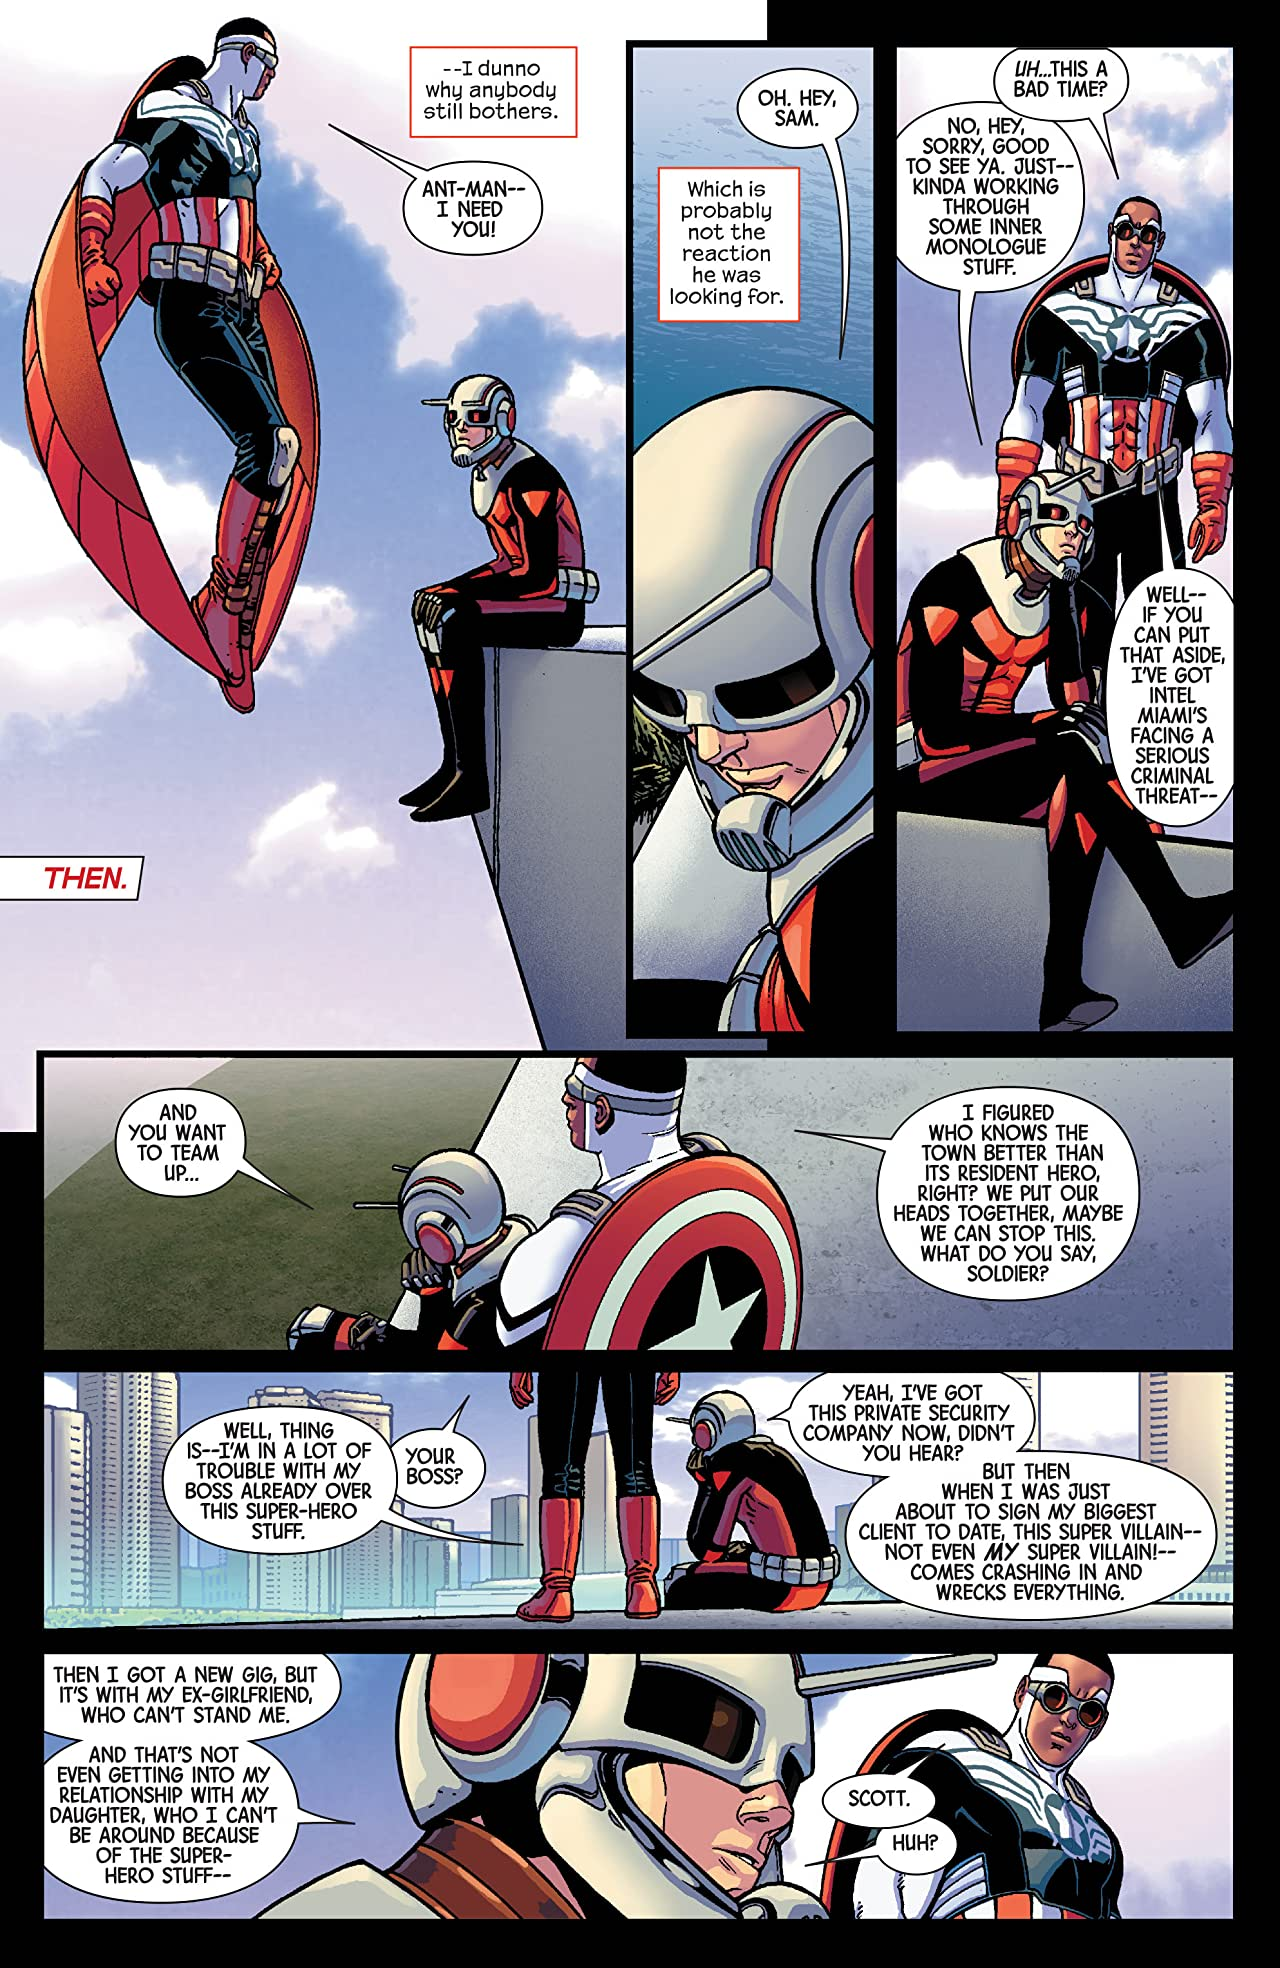 The Astonishing Ant-Man (2015-2016) #3